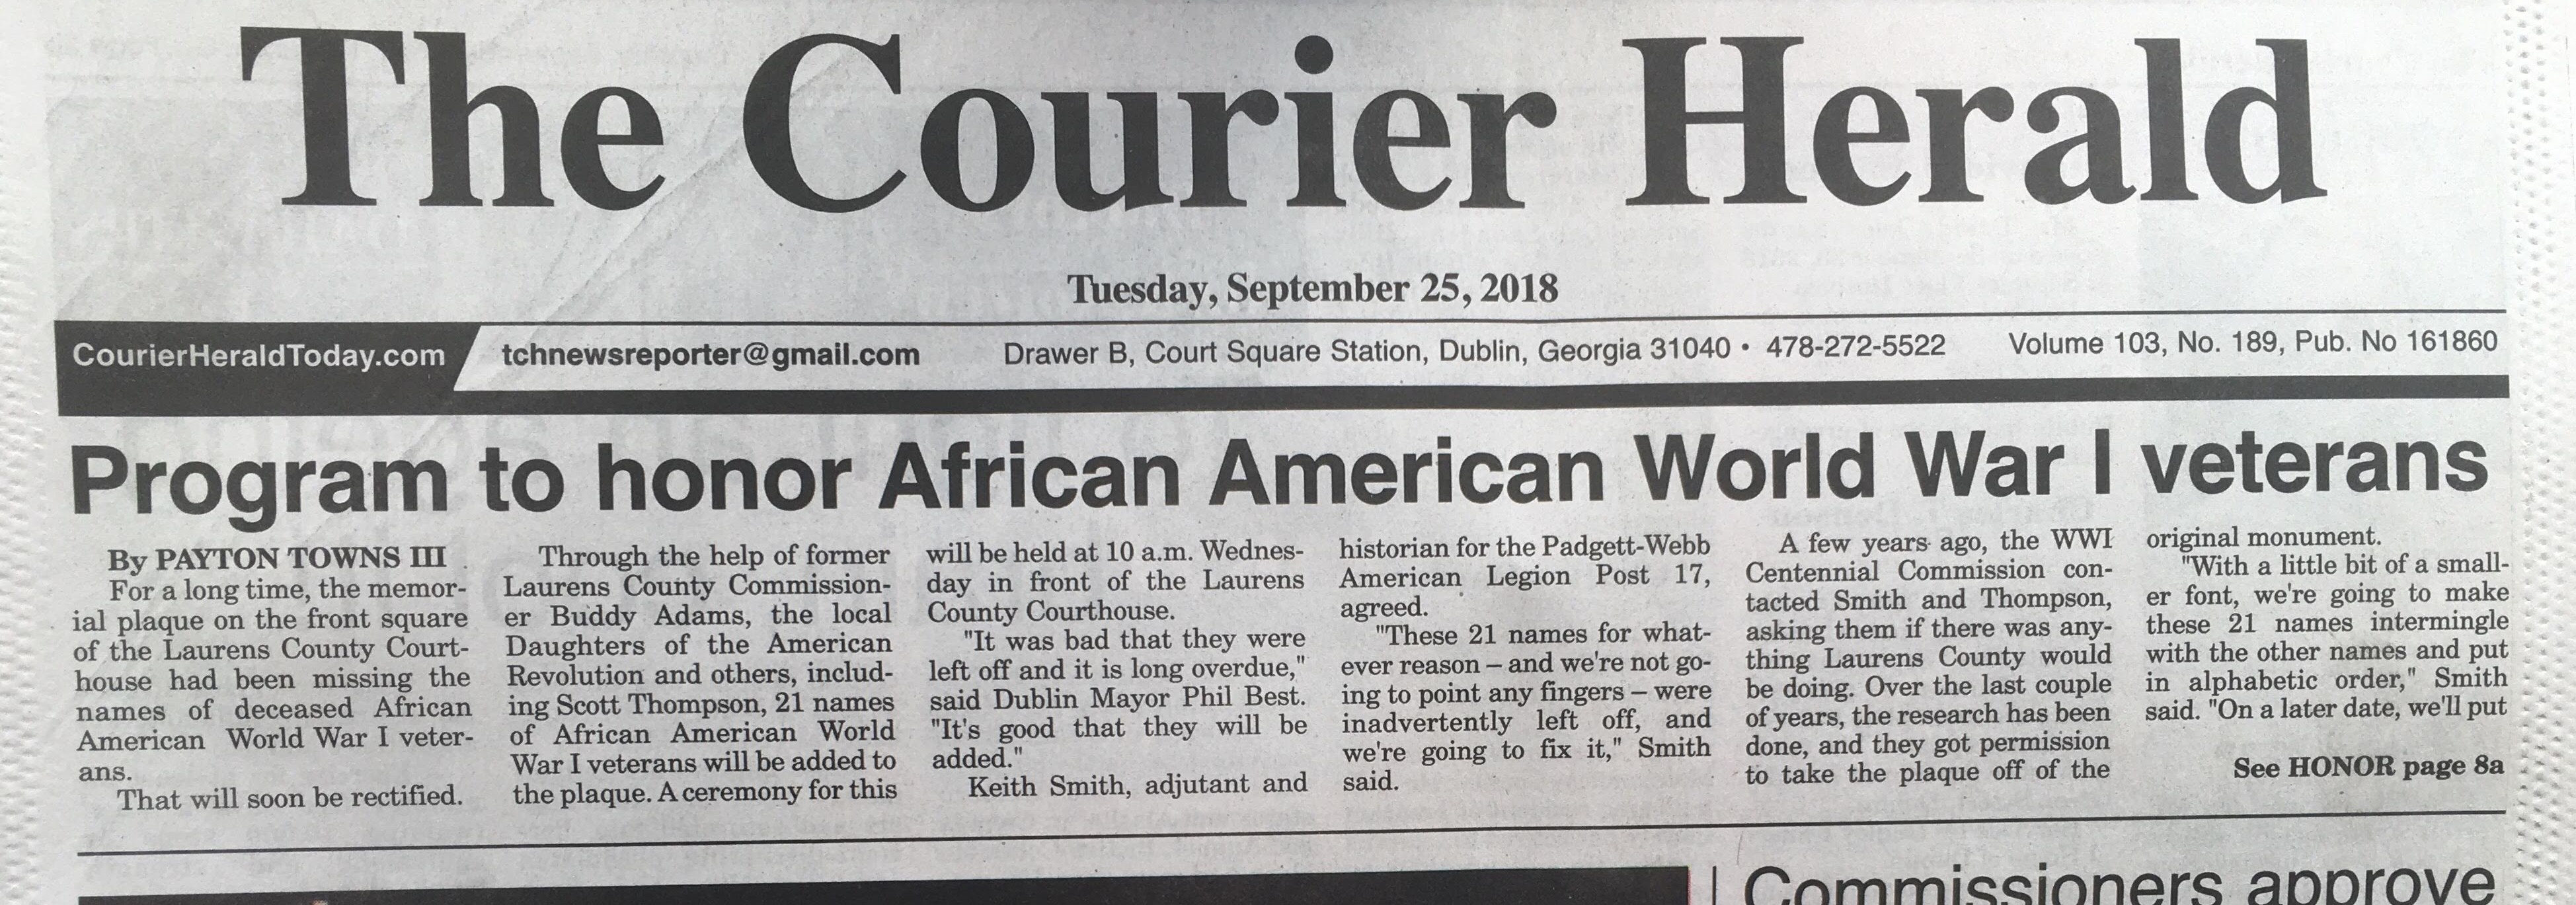 Newspaper clipping.  The Courier Herald.  'Program to honor African American WW1 Veterans'